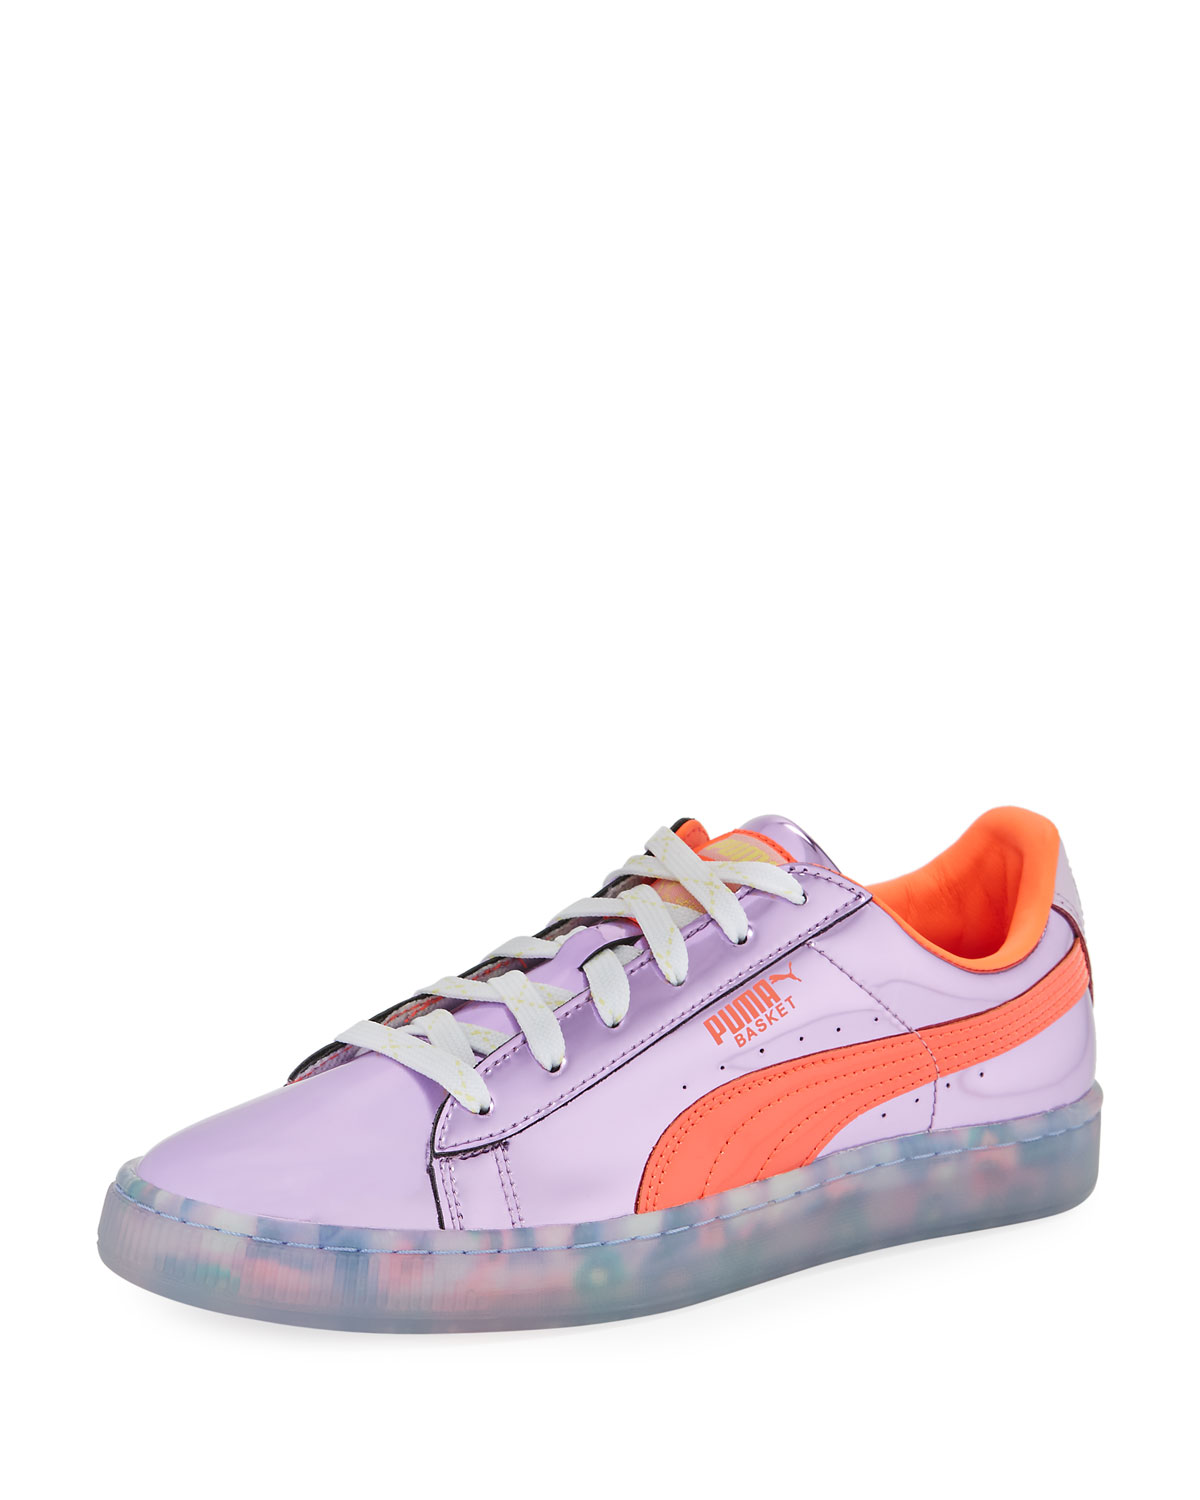 cb2fc8a1f5f6 Puma x Sophia Webster Candy Princess Leather Sneakers